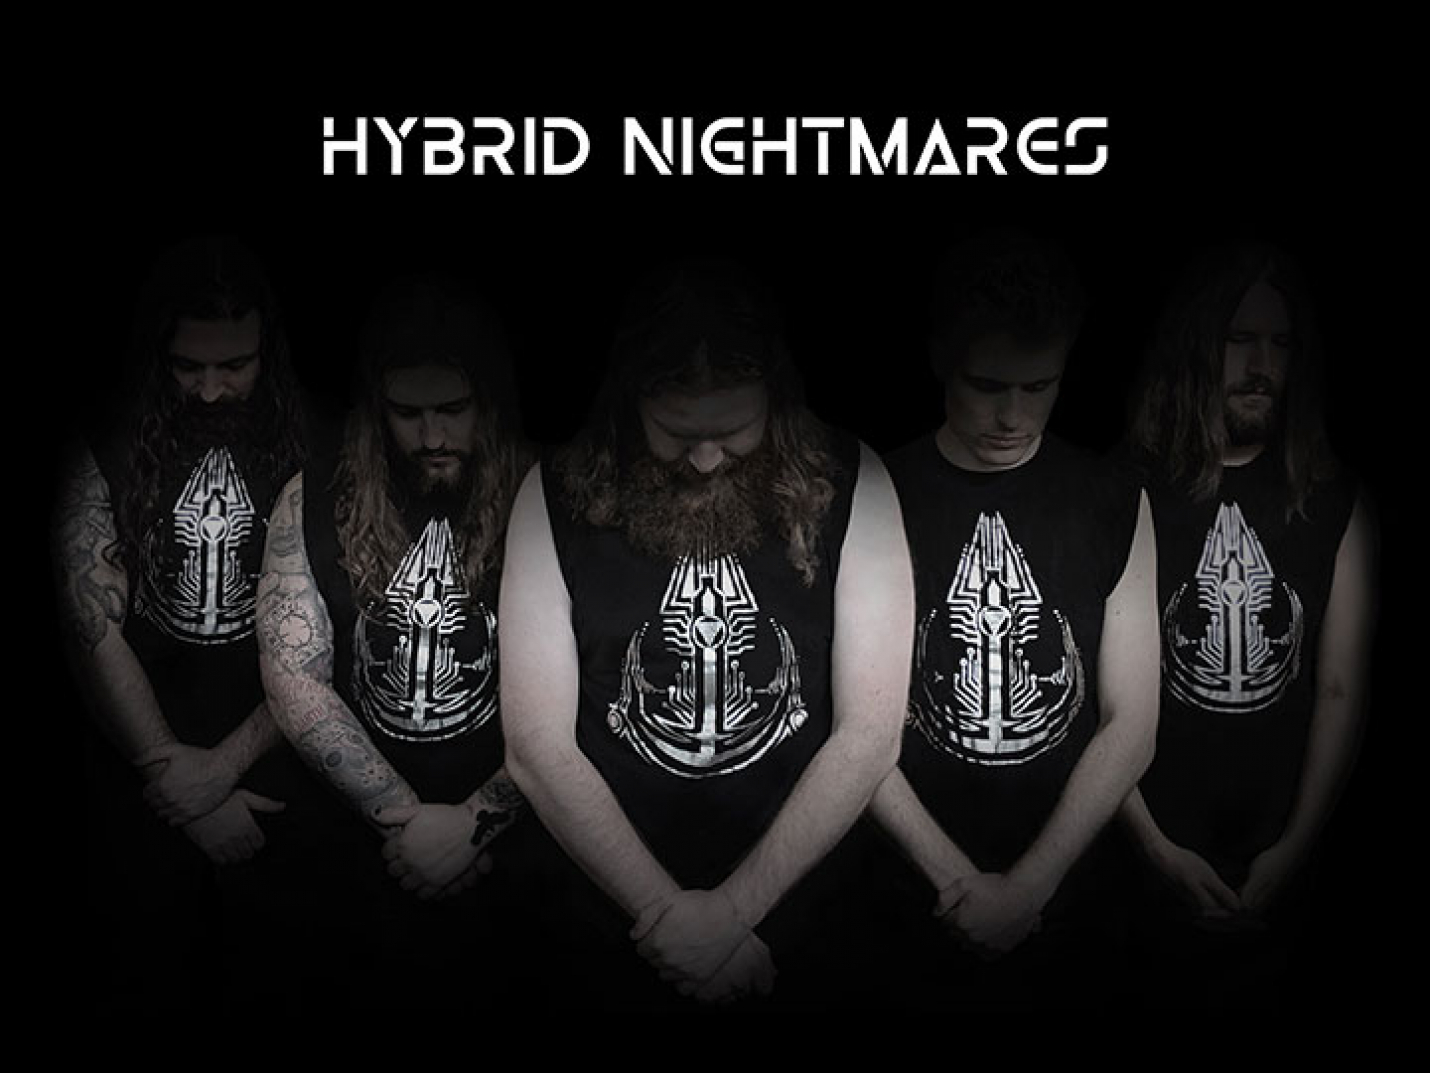 HYBRID NIGHTMARES Announce 'Obelisk' Album Release Show in Melbourne